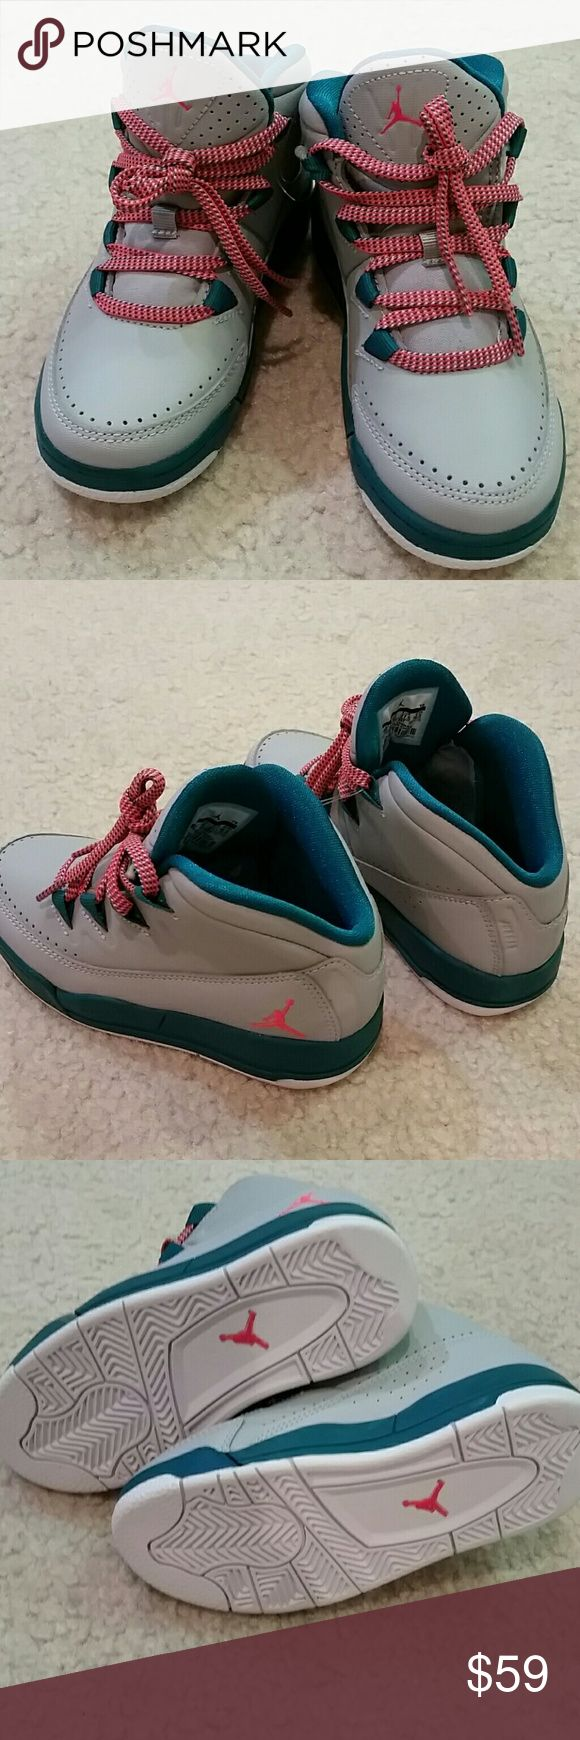 Brand new Toddler girl Air Jordan sneakers Brand new Toddler girl Air Jordans in size 10.5C. Typically will fit 4-5 year old girl. Beautiful teal and slate grey color with orange logo and laces. No PayPal or trades. Jordan Shoes Sneakers